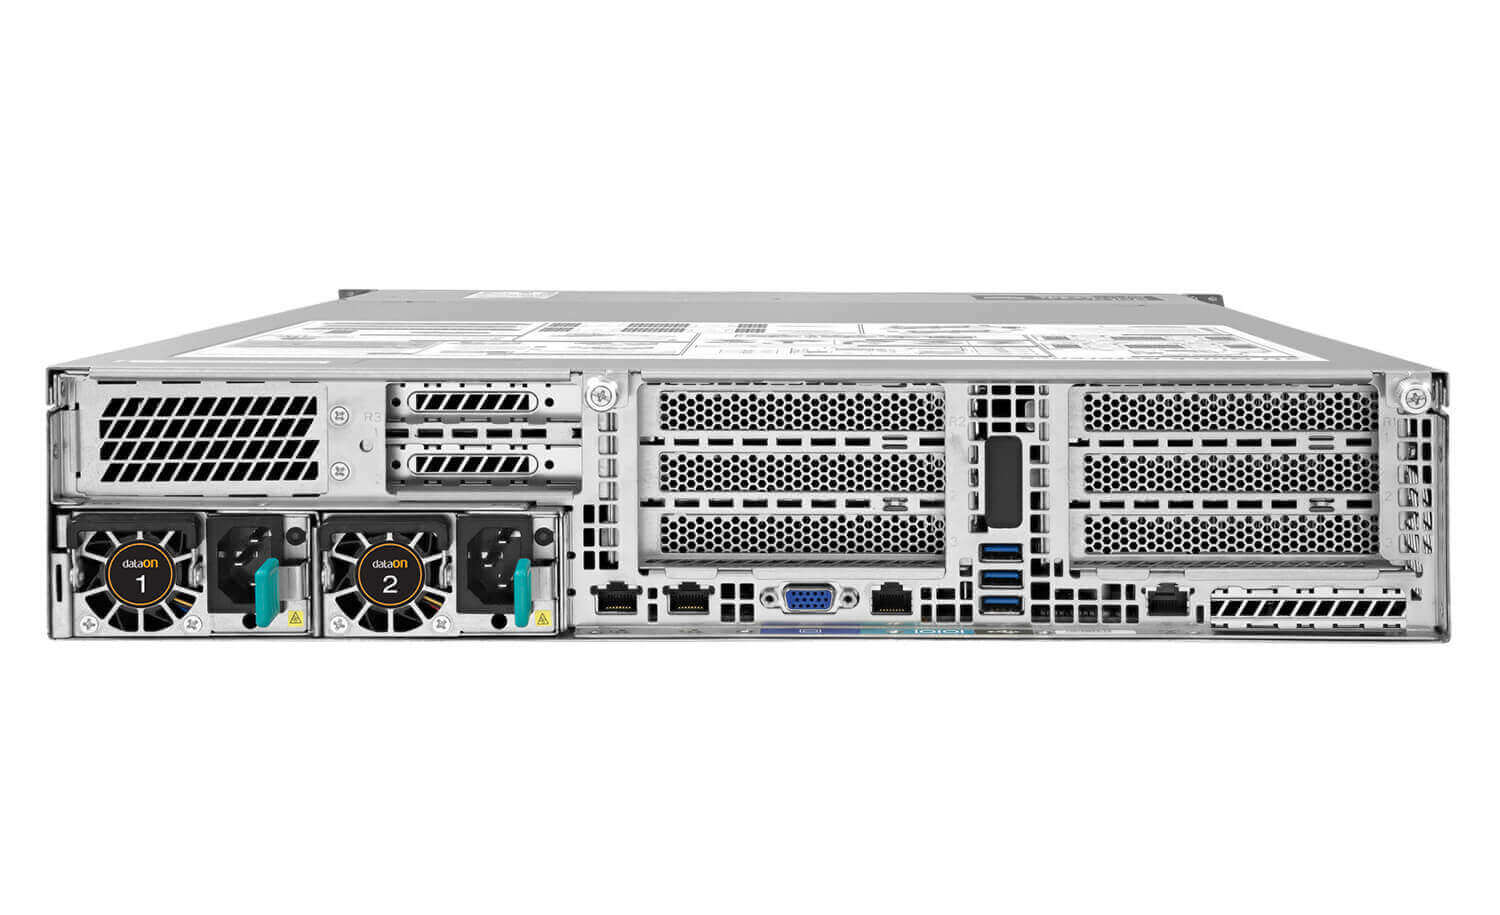 allsystems-producten-hyperconverged-systems-DataON_S2D-5208i_Rear_View